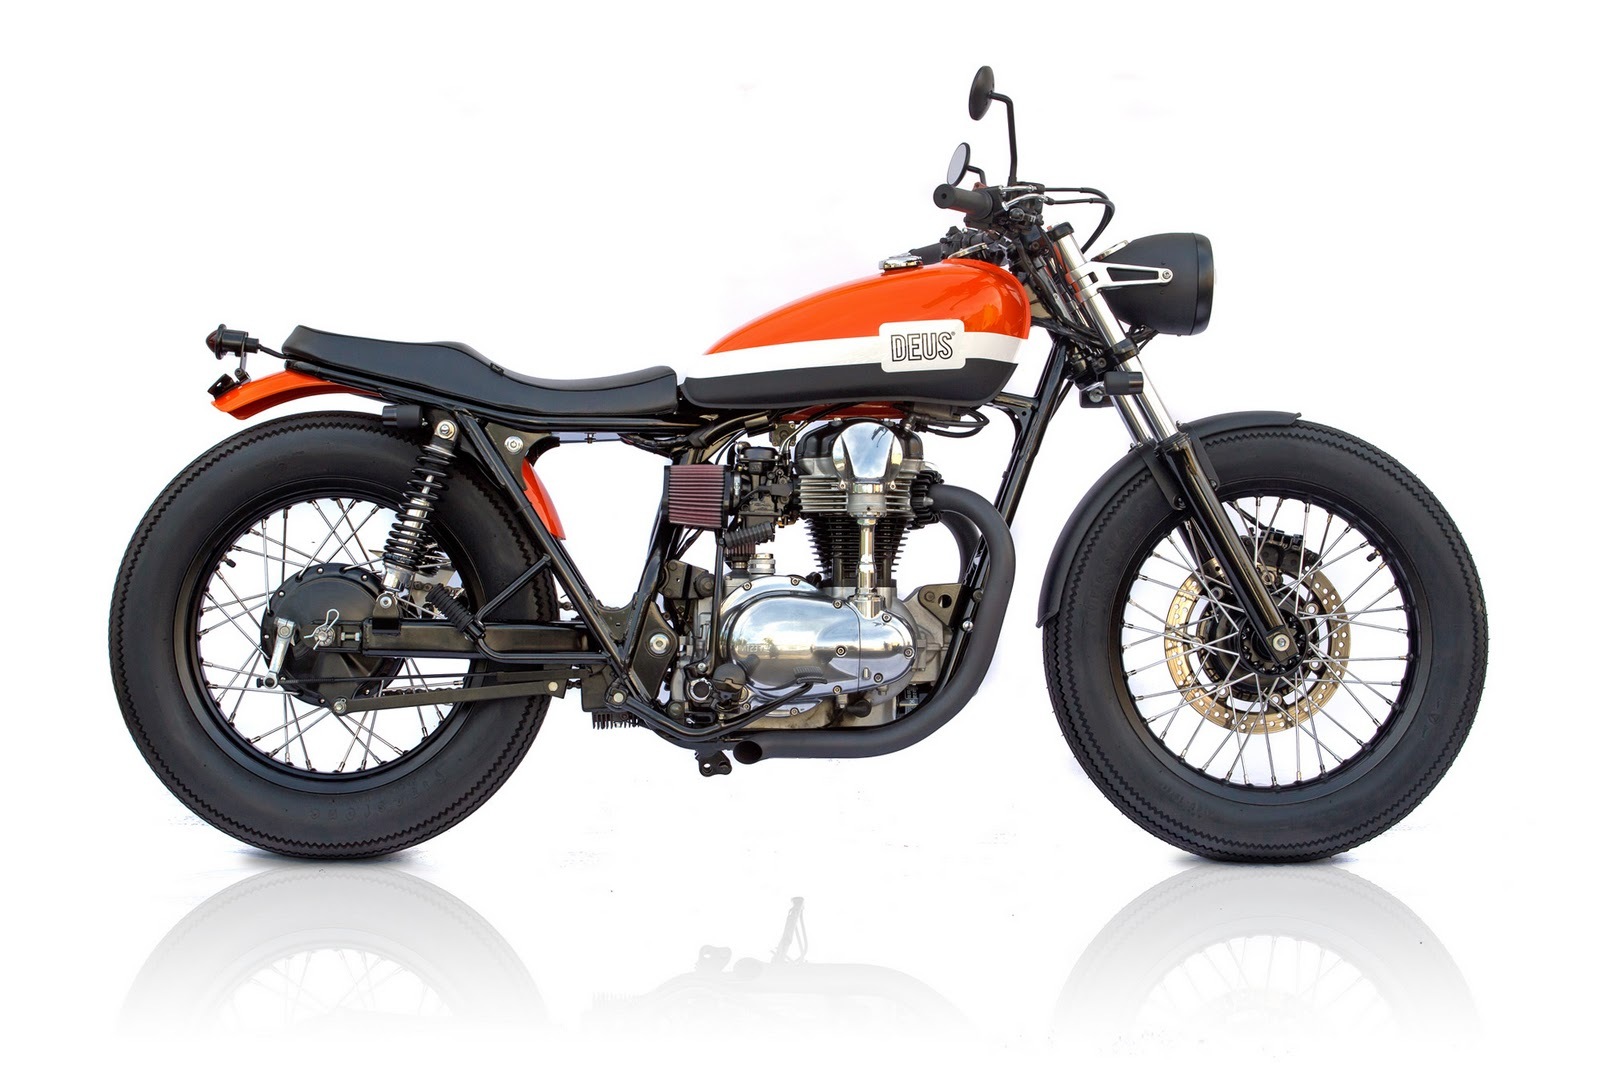 kawasaki w650 by deus french connection epm4race. Black Bedroom Furniture Sets. Home Design Ideas